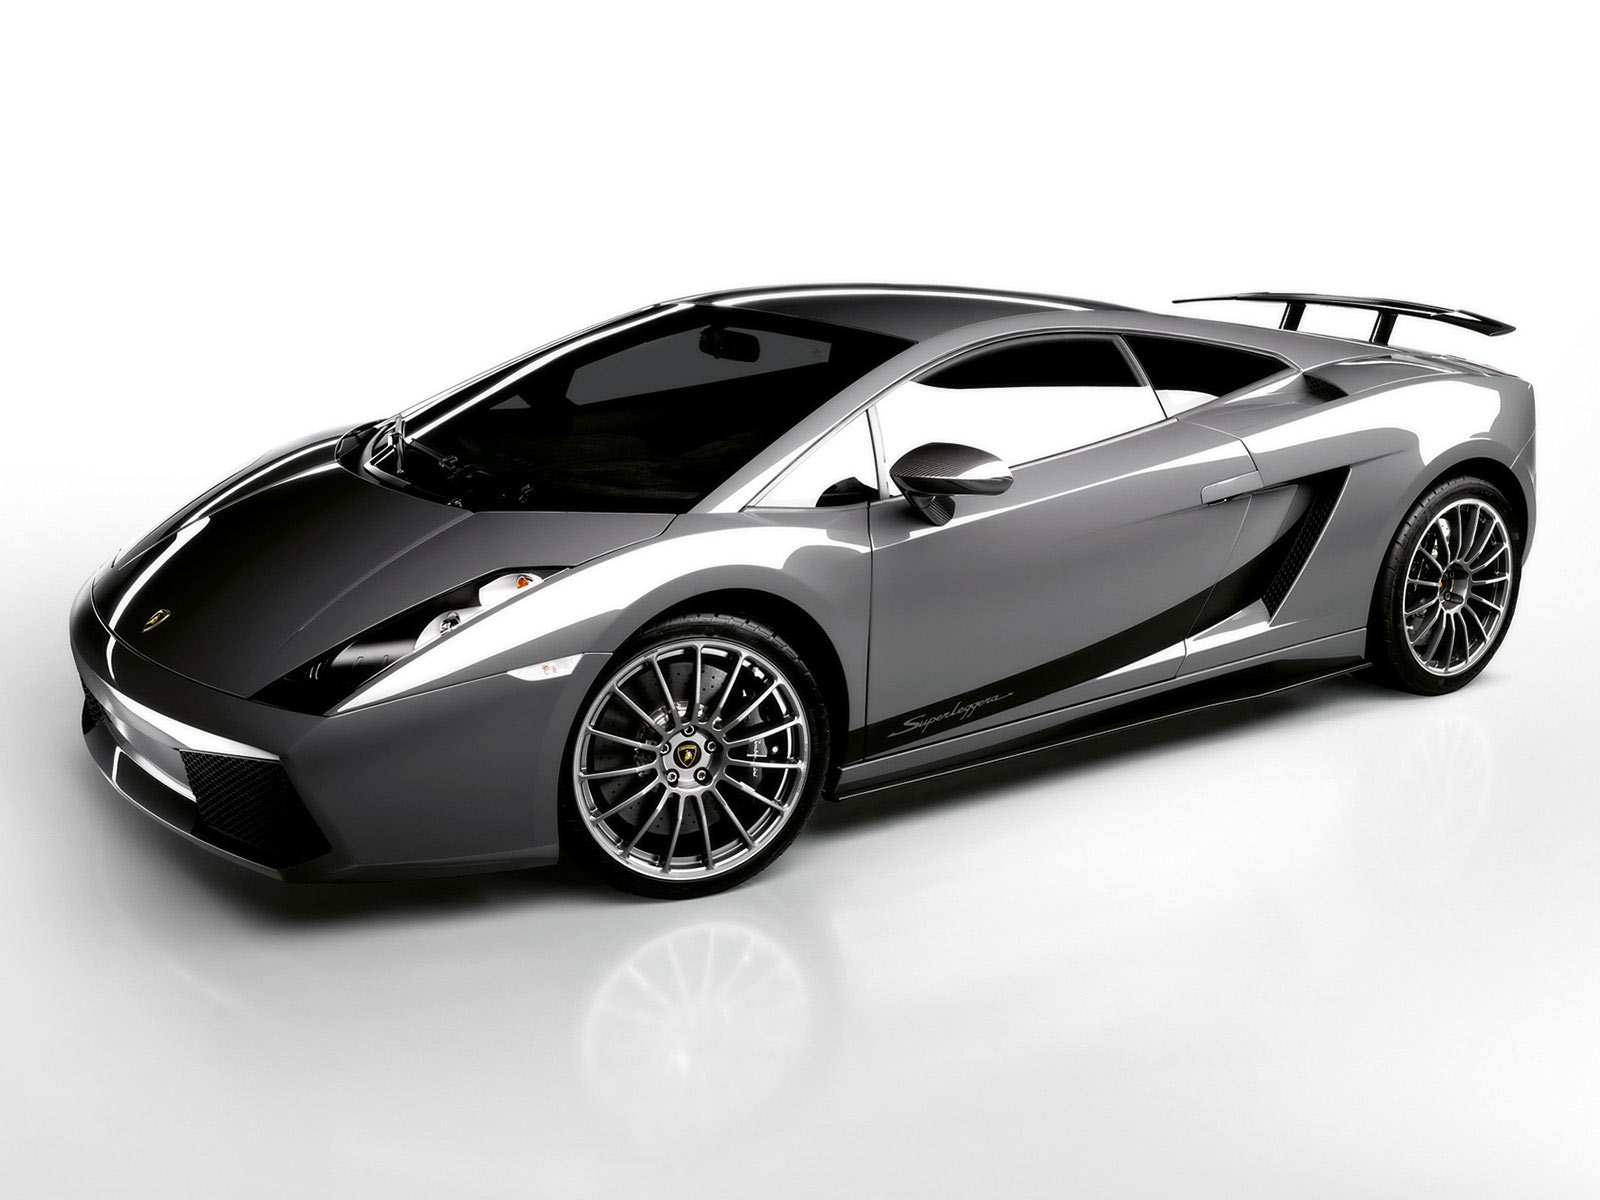 Lamborghini Gallardo World Of Cars